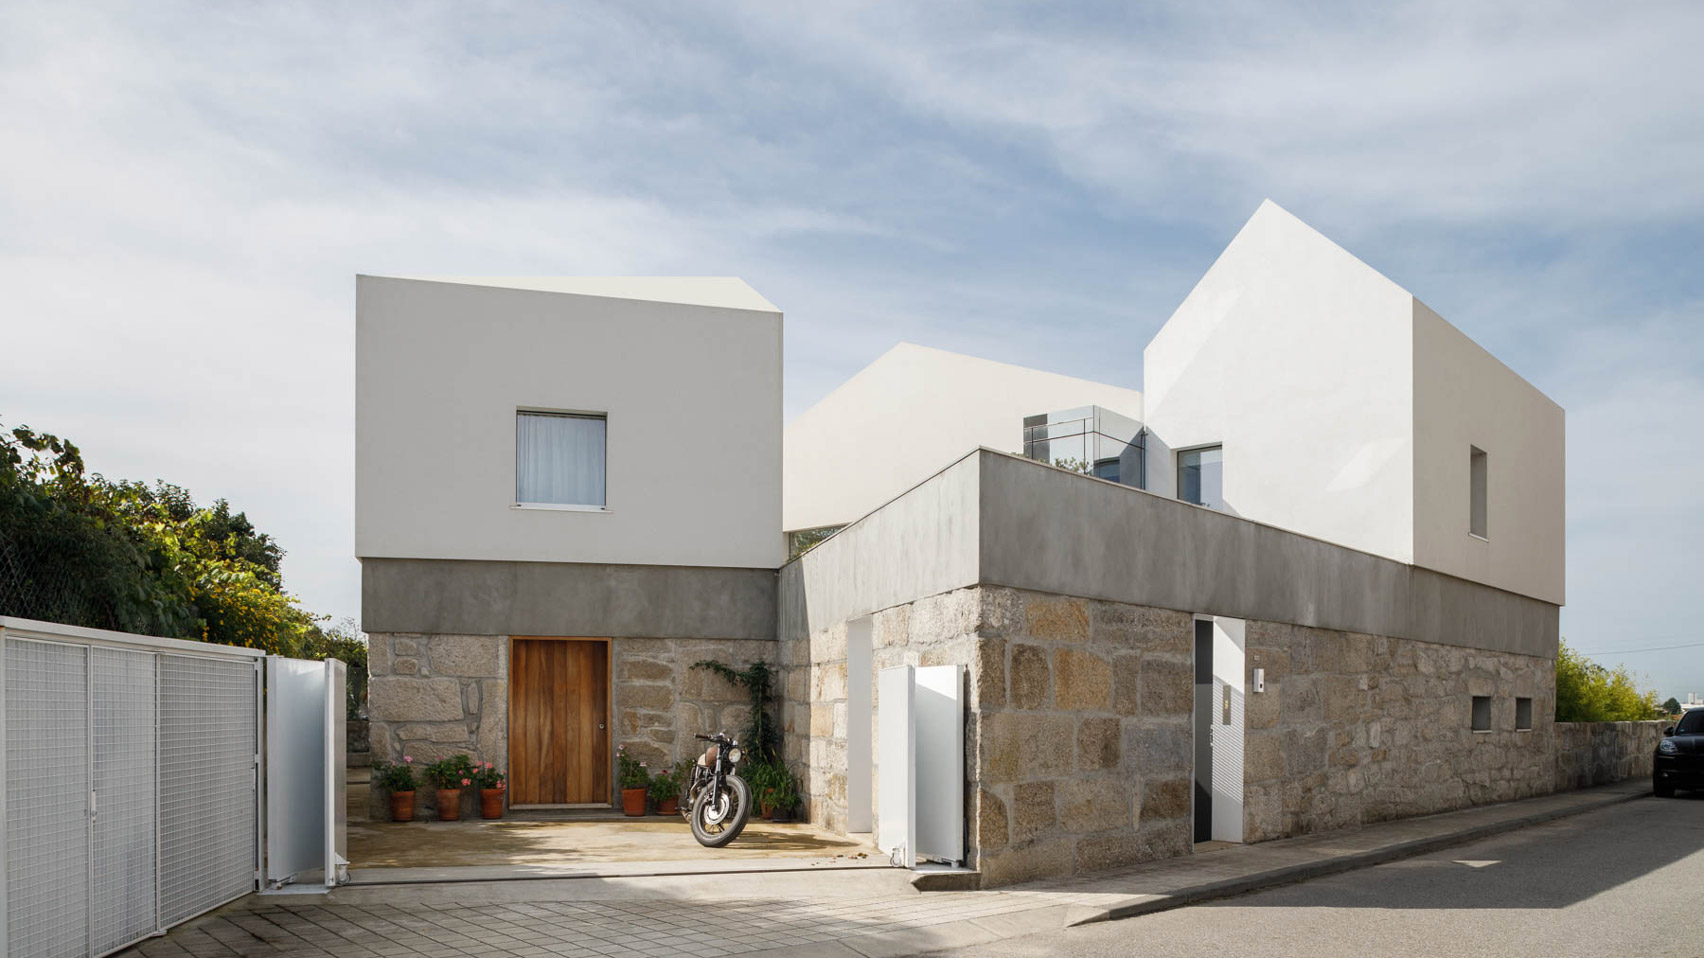 The home has a stone and white rendered exterior